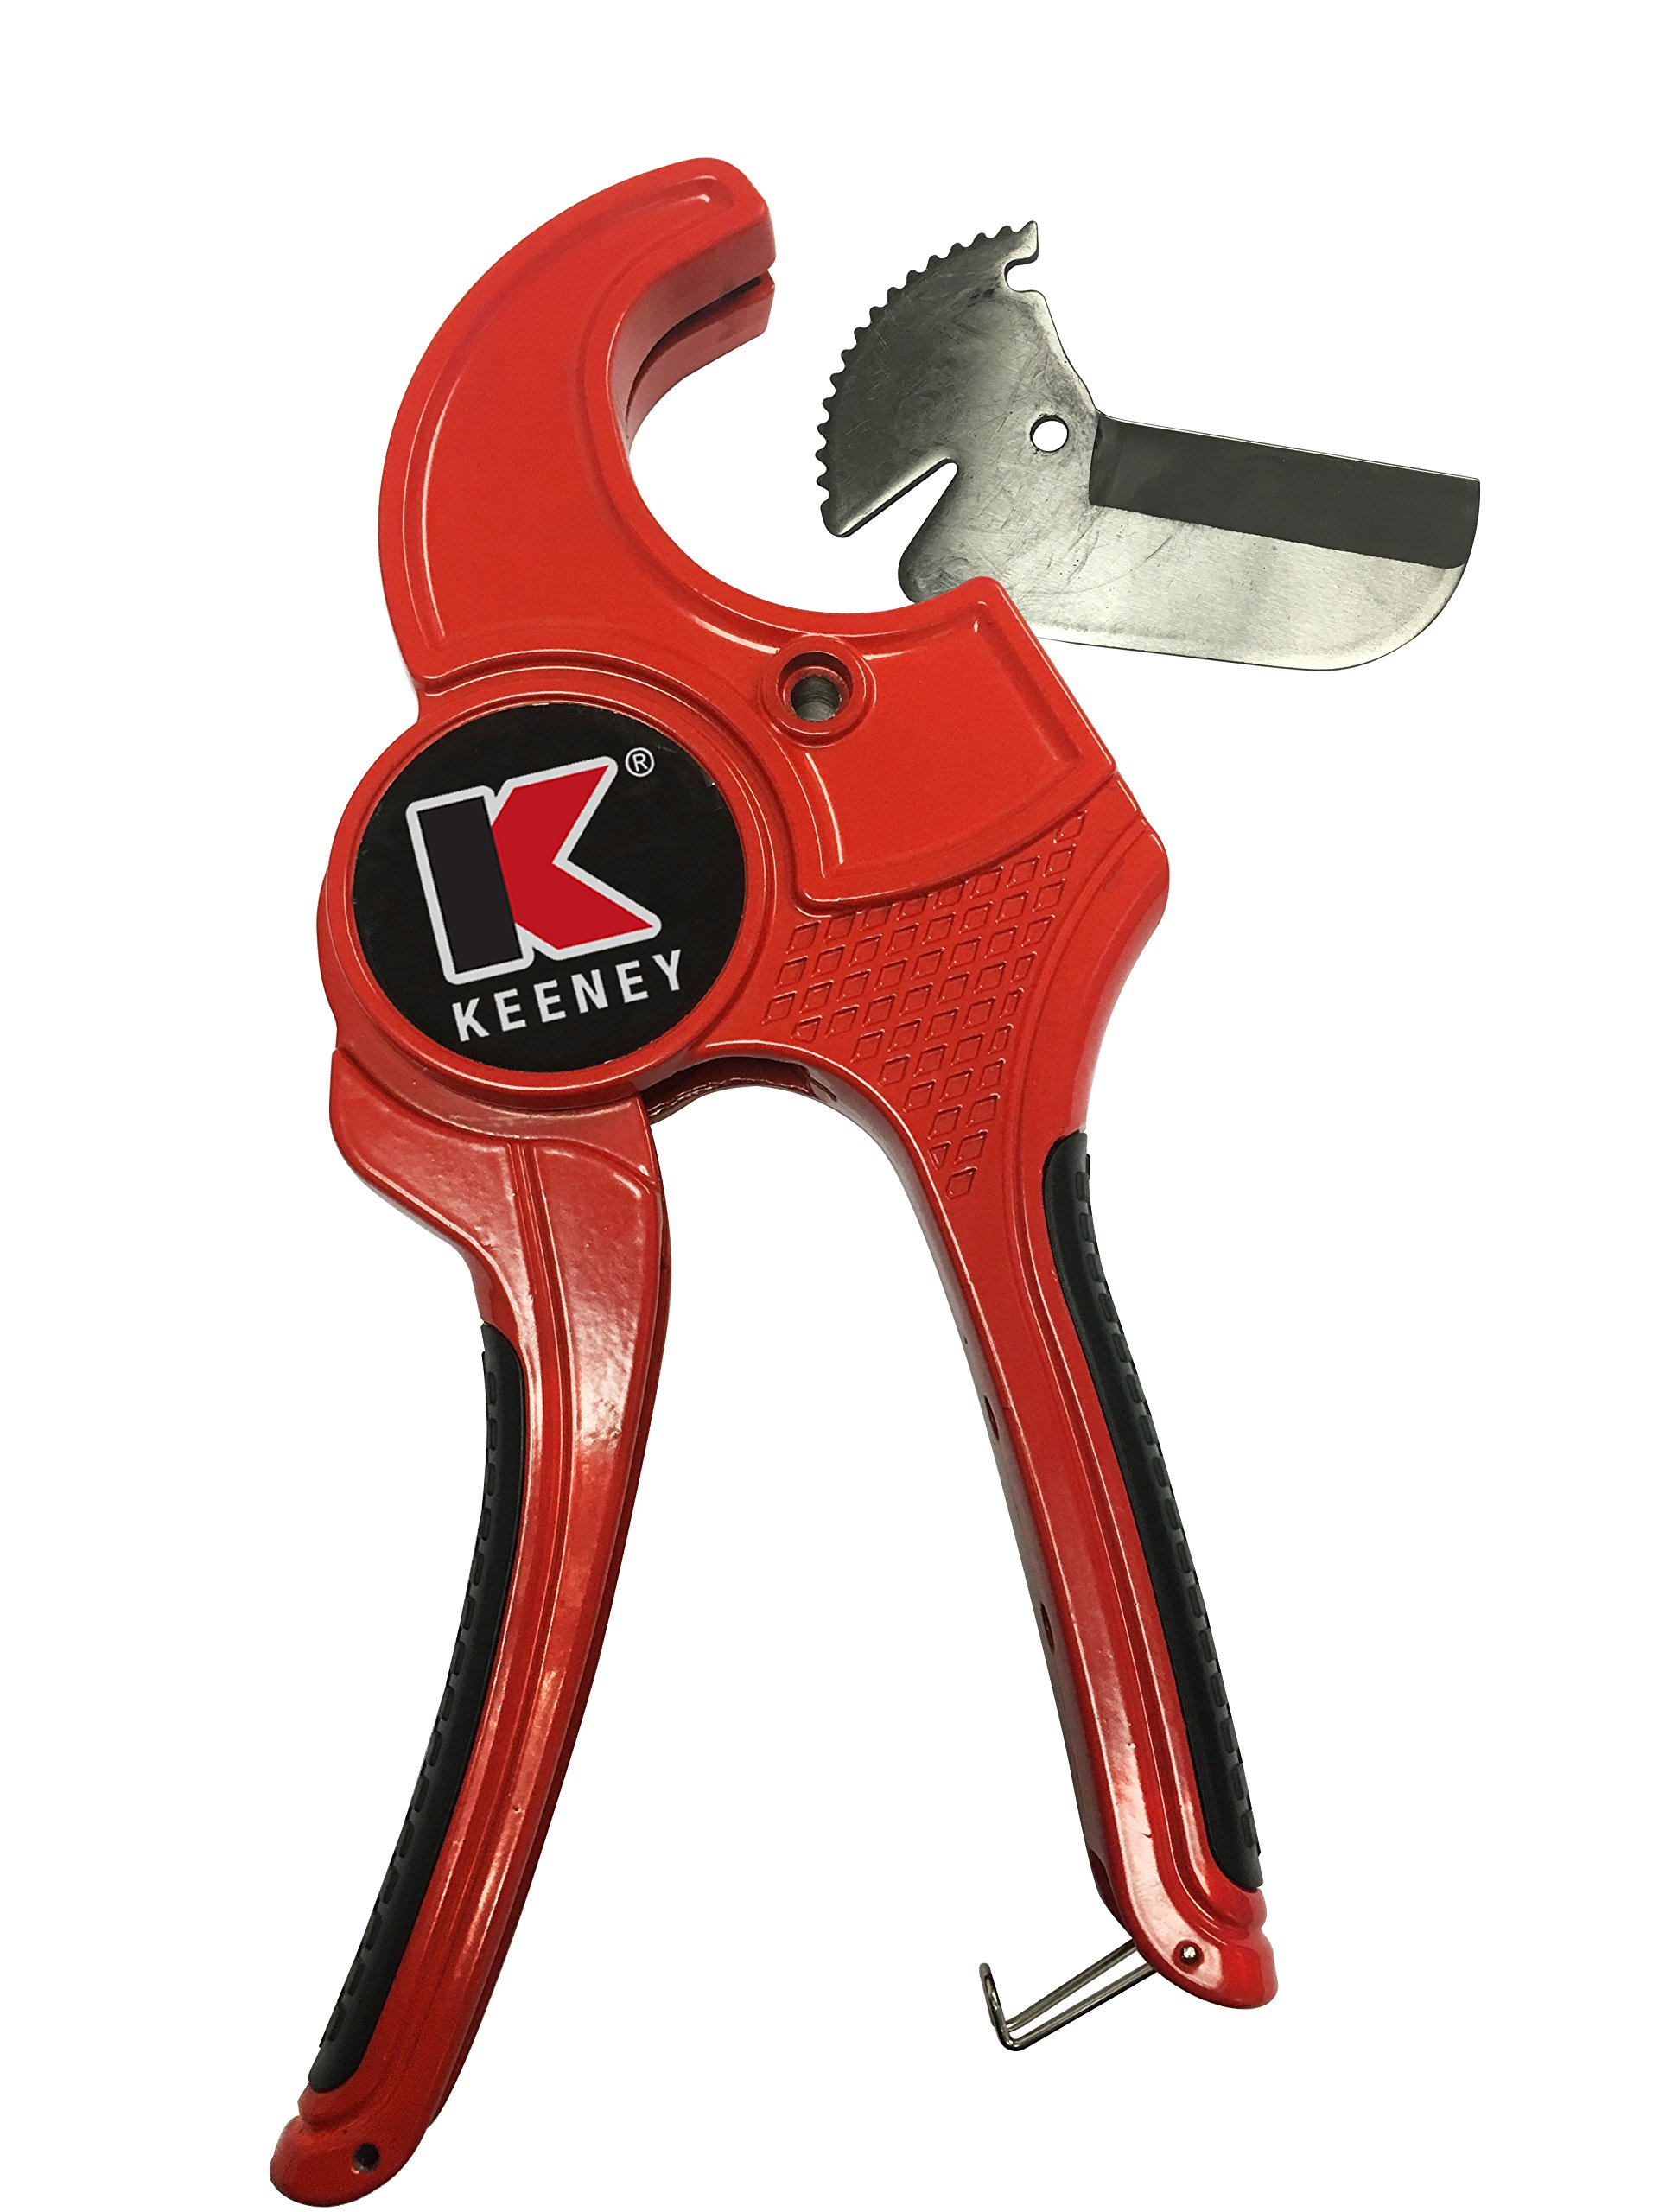 "Plumb Pak K840-102 Automatic Pipe Cutter, 2-1/2 in High Carbon Steel Blade, Aluminum Alloy Body, 2-1/2"", Red"